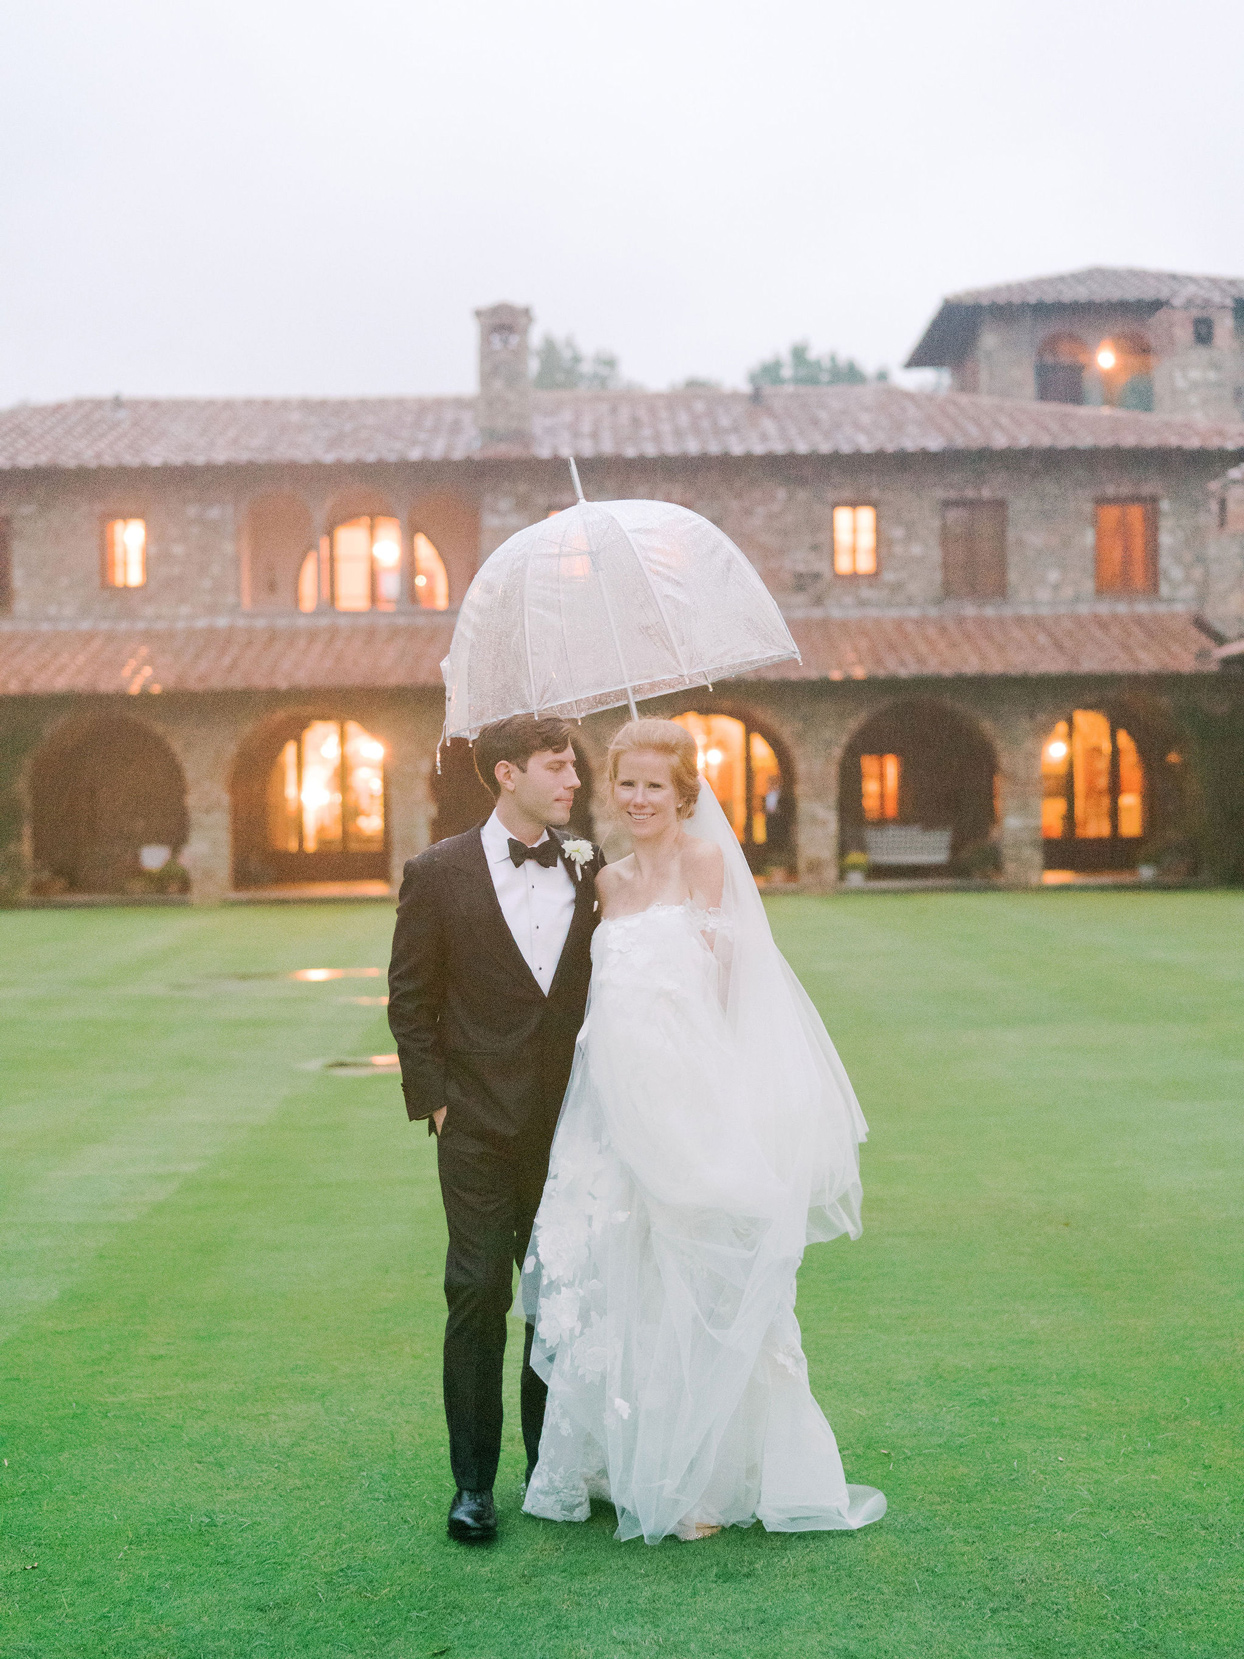 bride and groom outside wedding venue under umbrella